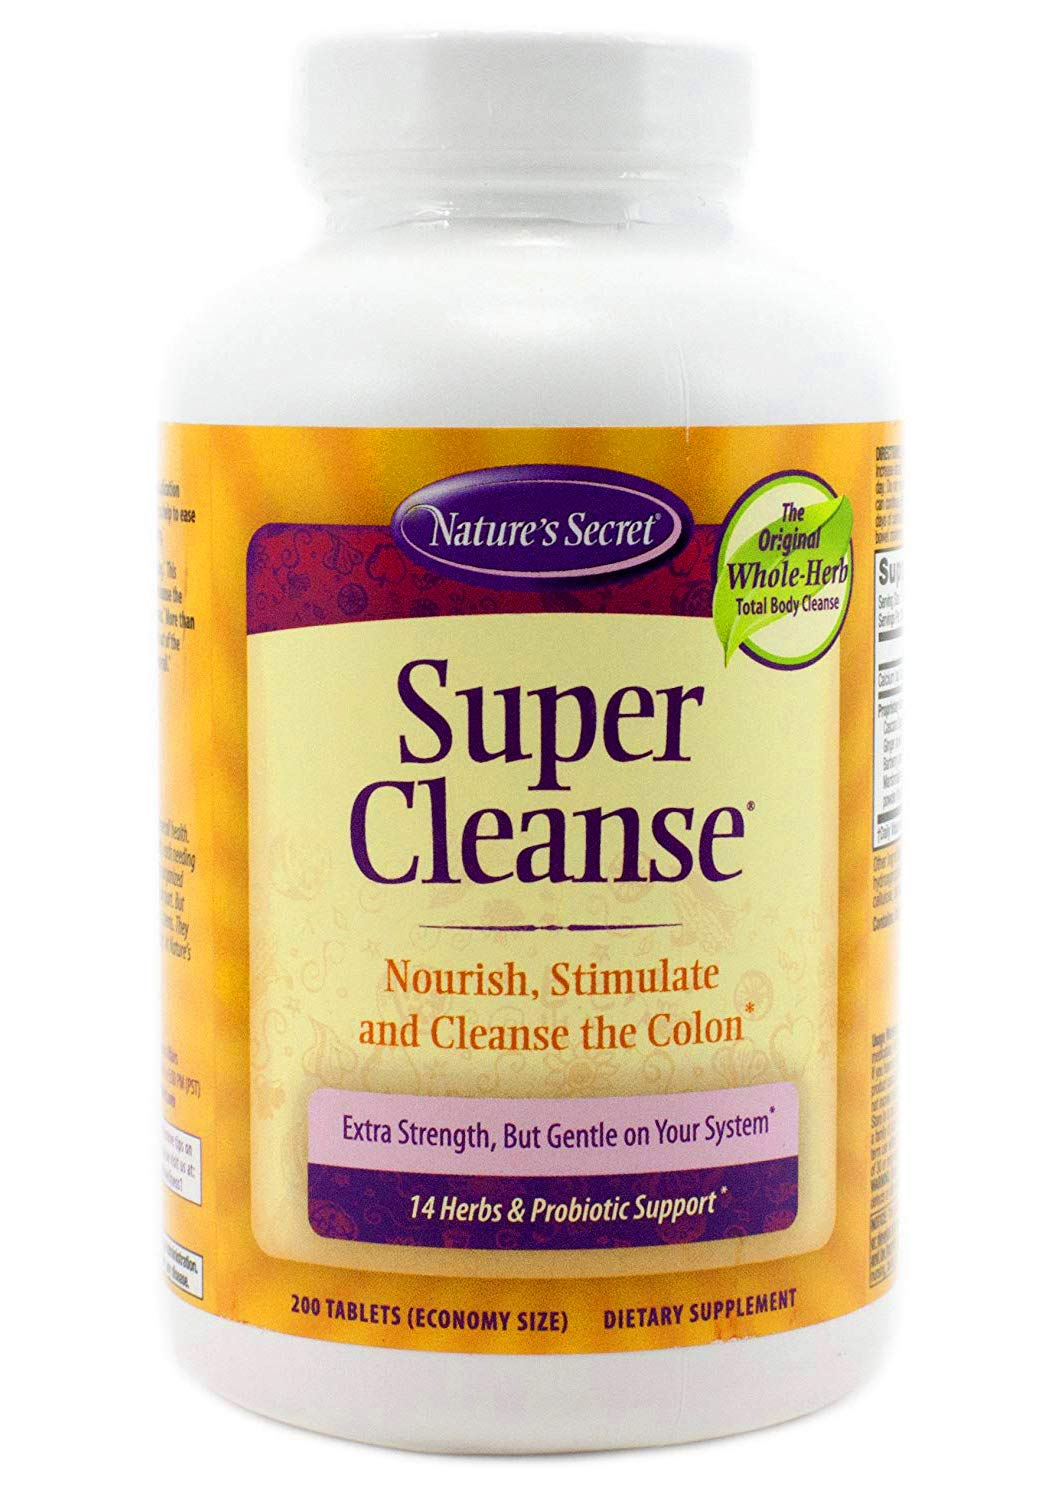 Nature's Secret Super Cleanse Herbal and Probiotic Support, 200 Tablets (Pack of 2) by Nature's Secret